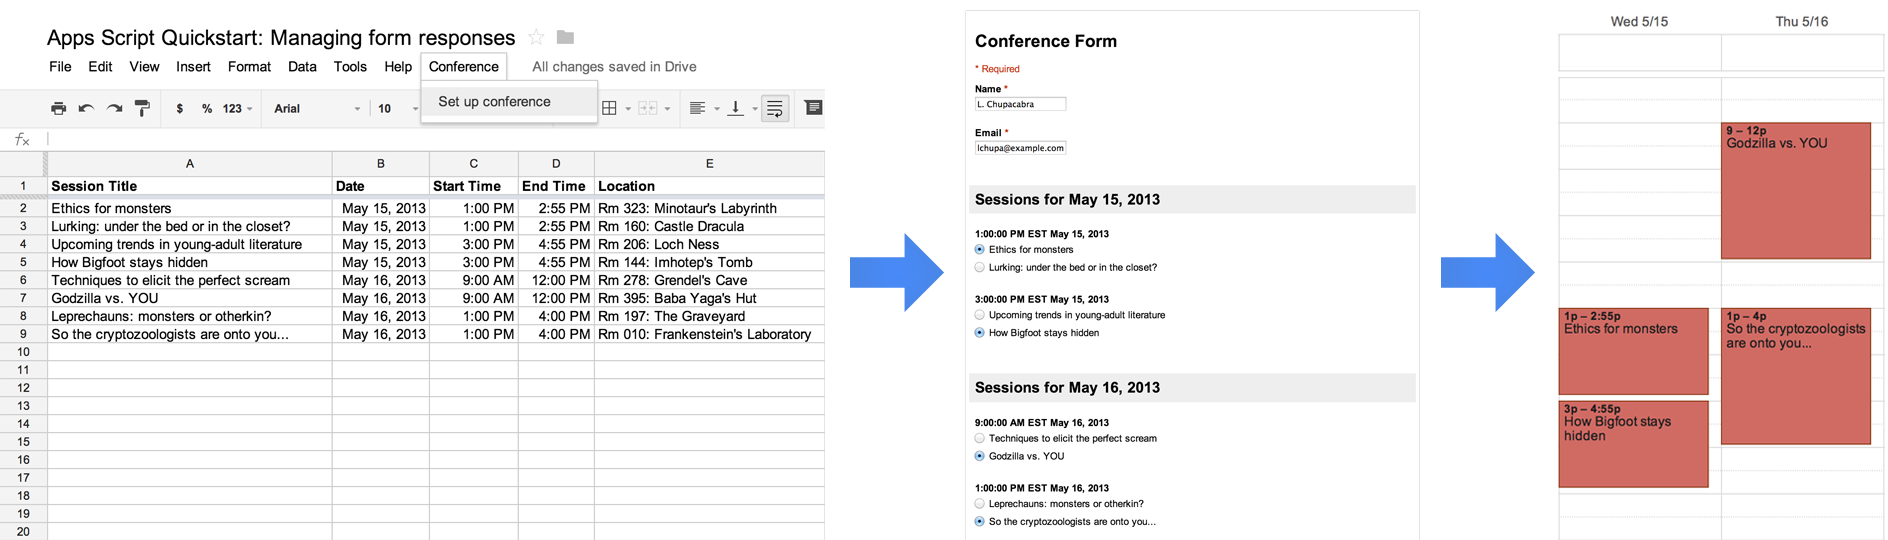 Quickstart: Managing Responses for Google Forms | Apps Script ...